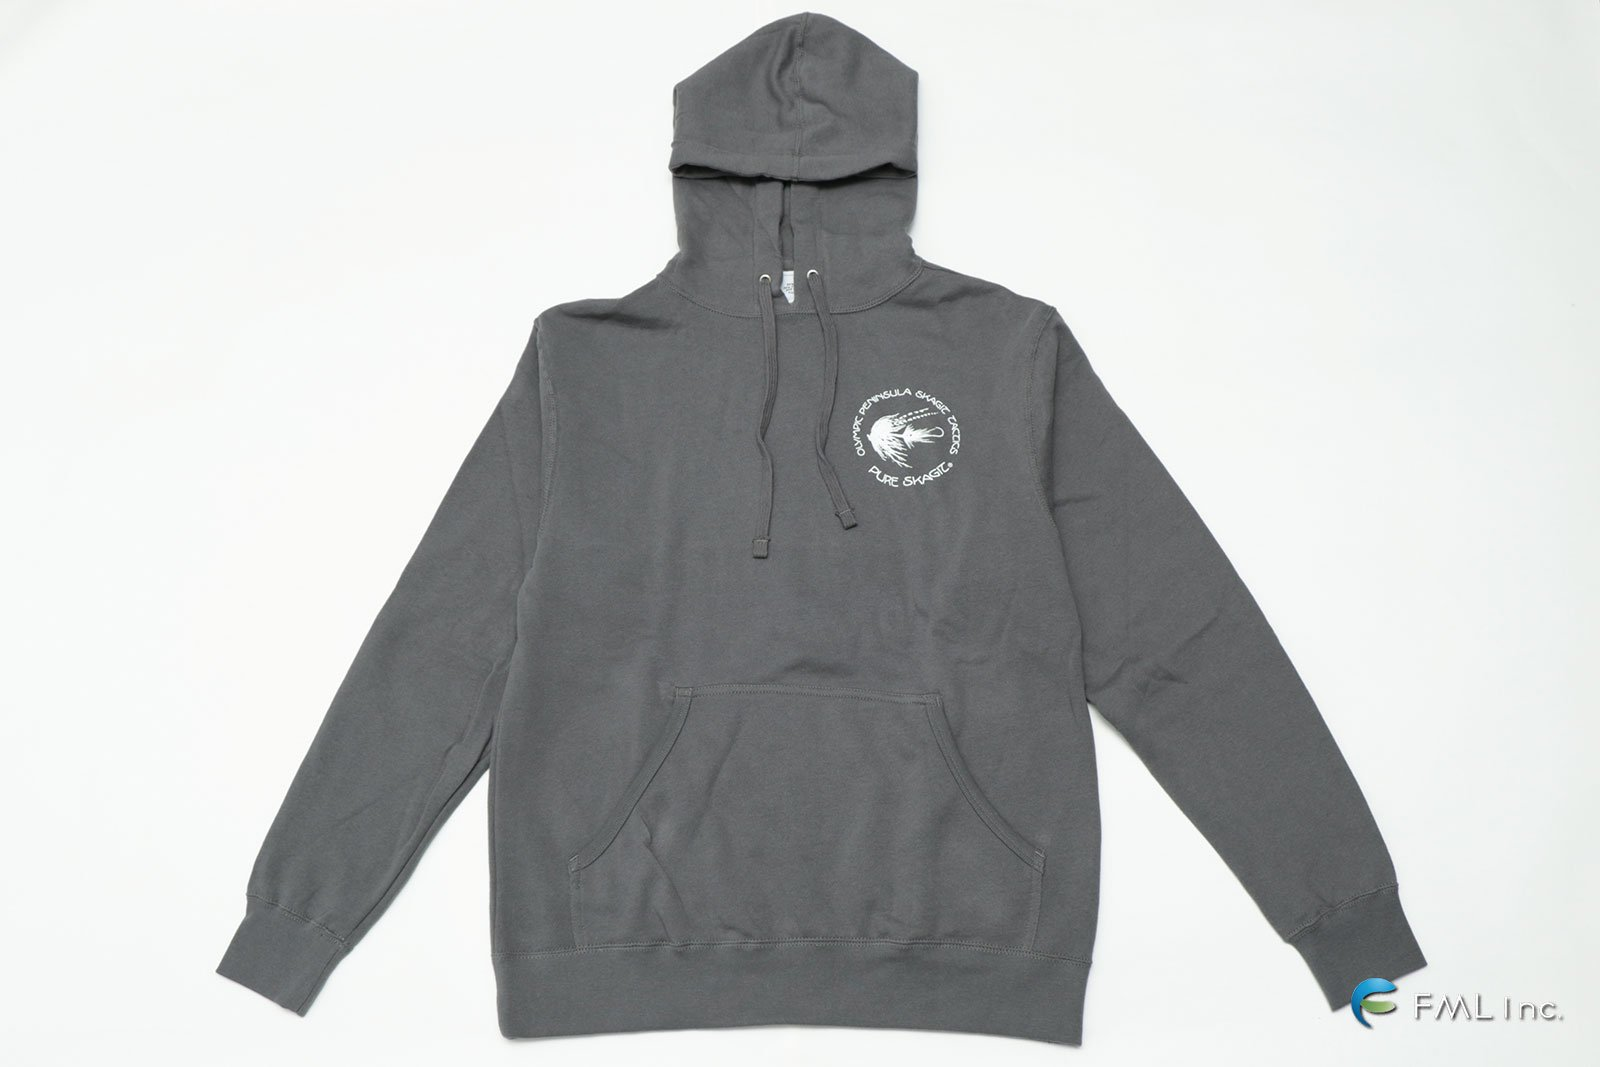 <img class='new_mark_img1' src='https://img.shop-pro.jp/img/new/icons5.gif' style='border:none;display:inline;margin:0px;padding:0px;width:auto;' />OPST Lightweight Hooded Pullover Sweatshirt CHARCOAL-SOLID (HO)